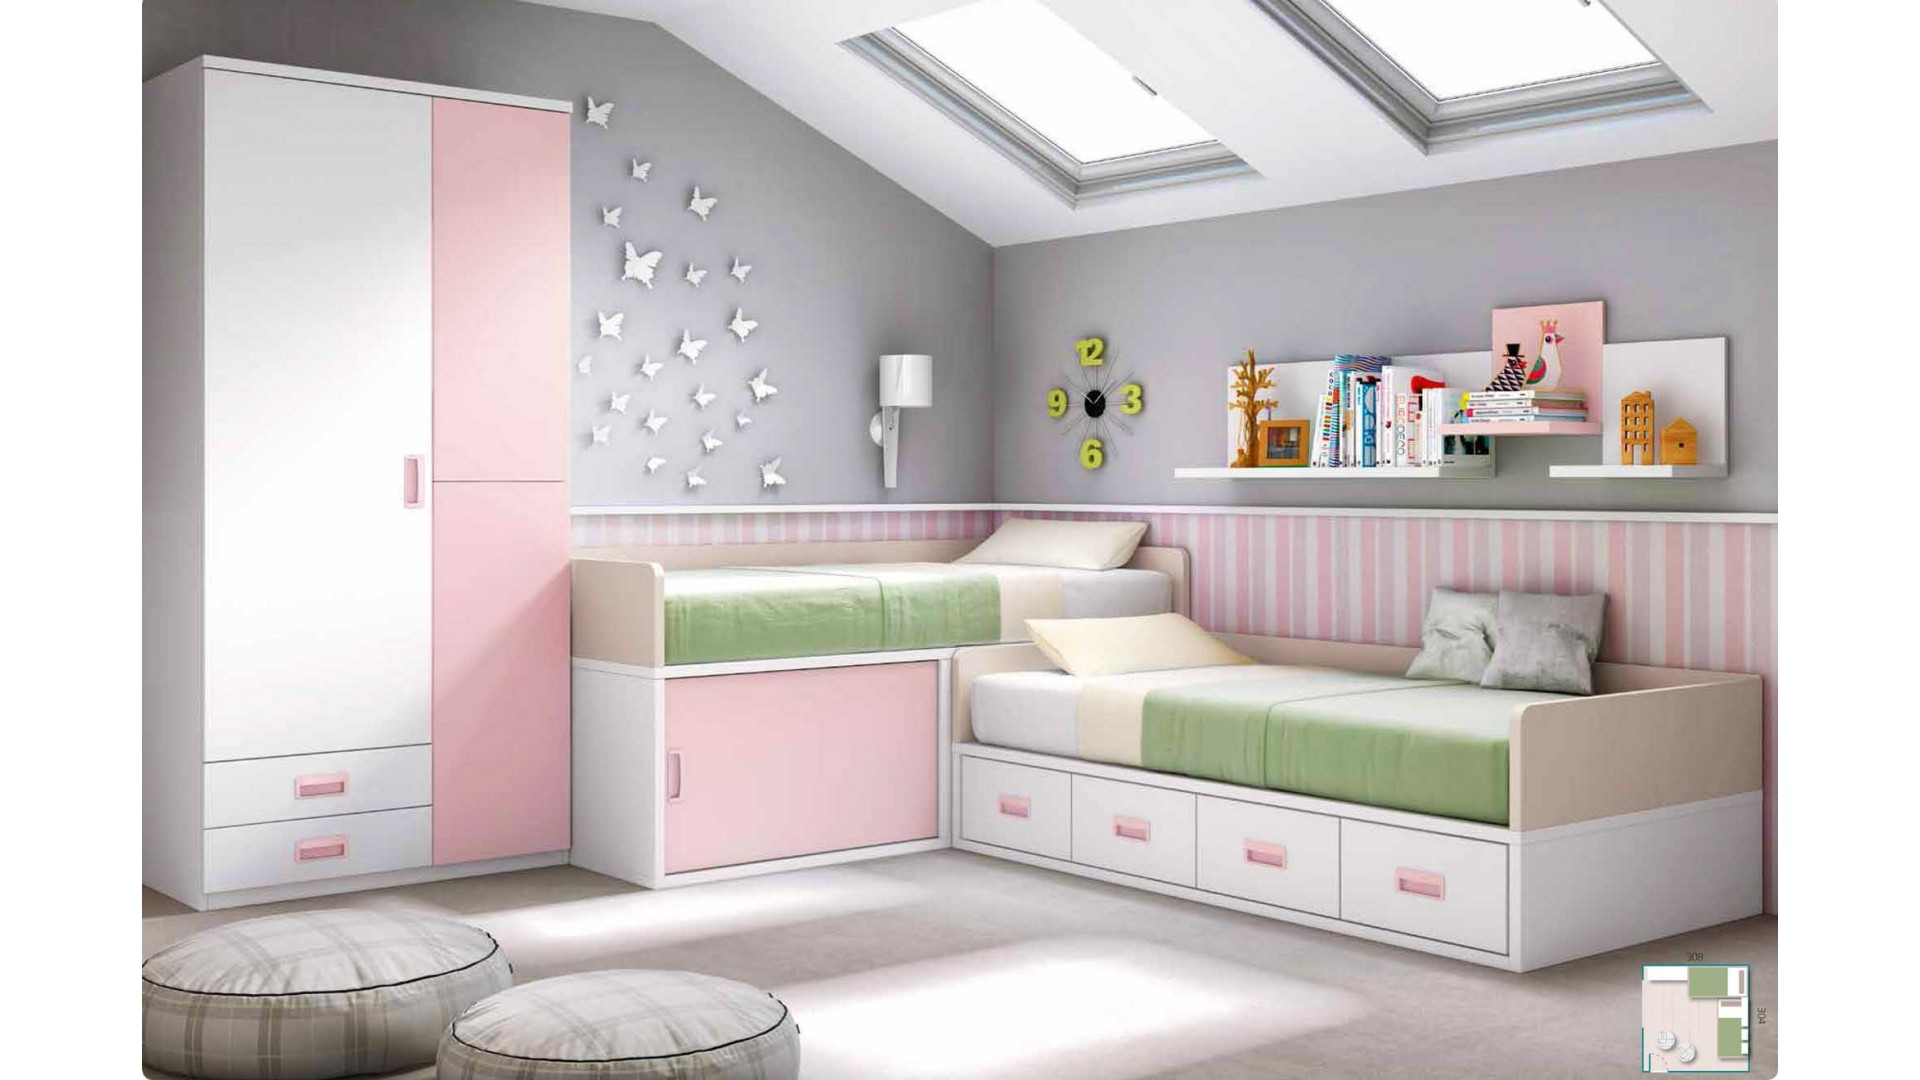 chambre fillette personnaliser pour 2 fille glicerio so nuit. Black Bedroom Furniture Sets. Home Design Ideas